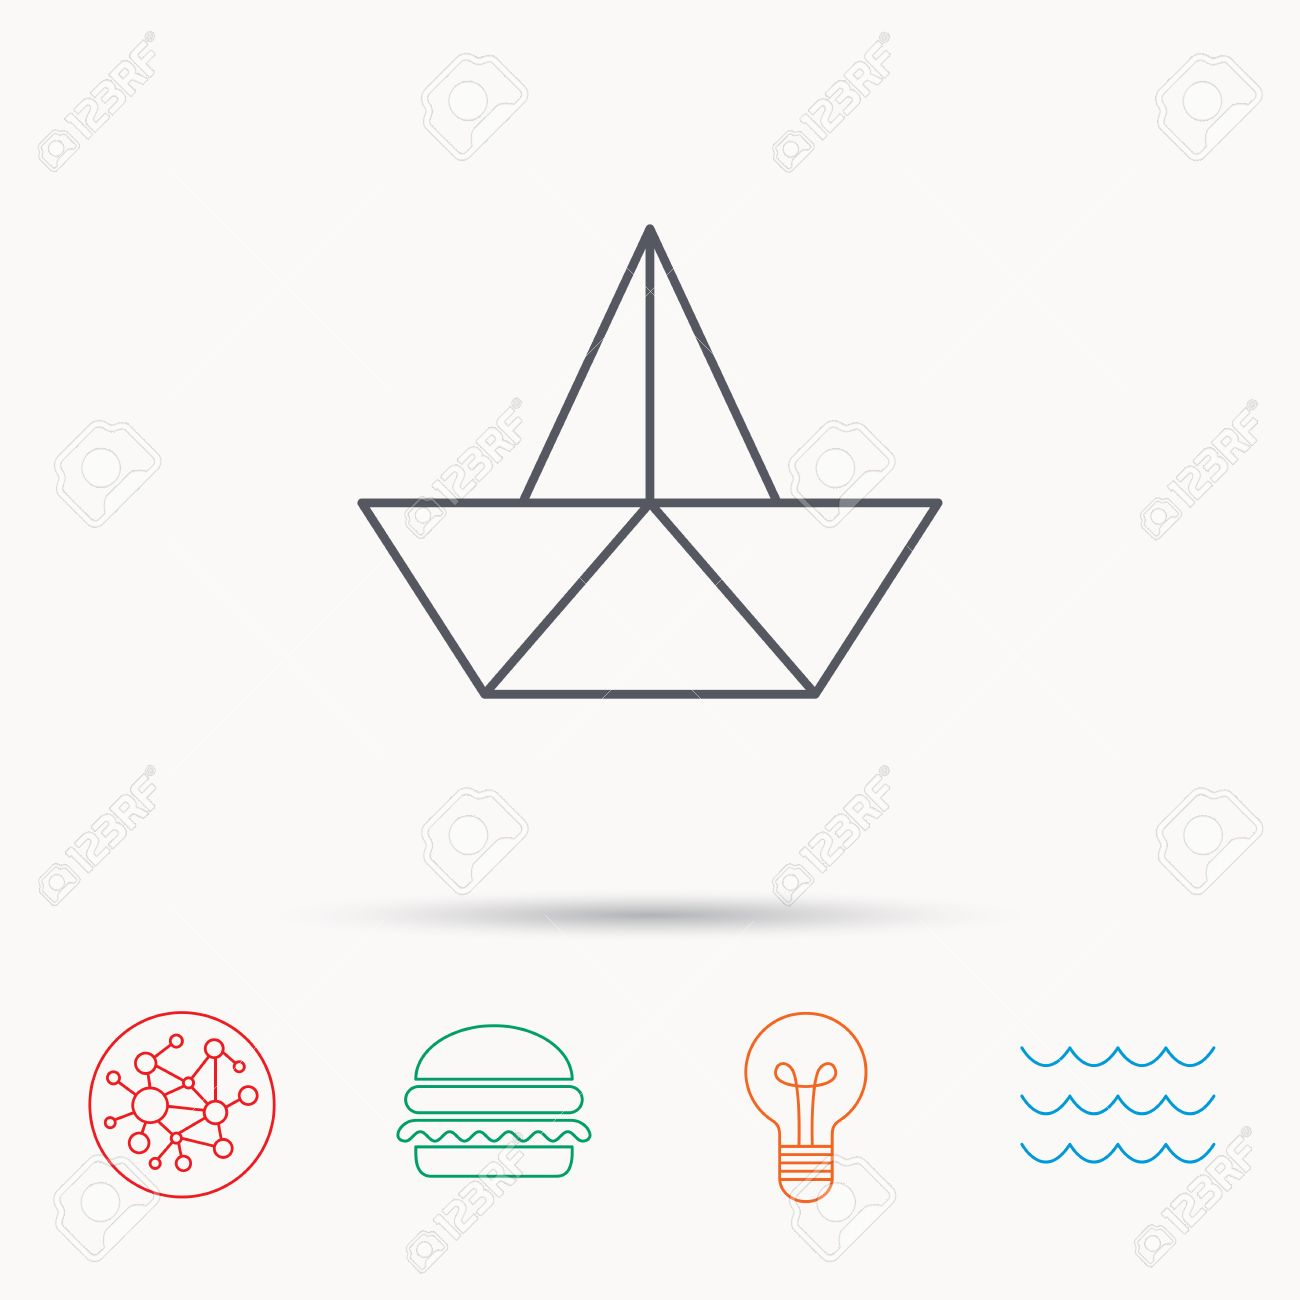 Paper boat icon origami ship sign sailing symbol global connect paper boat icon origami ship sign sailing symbol global connect network ocean buycottarizona